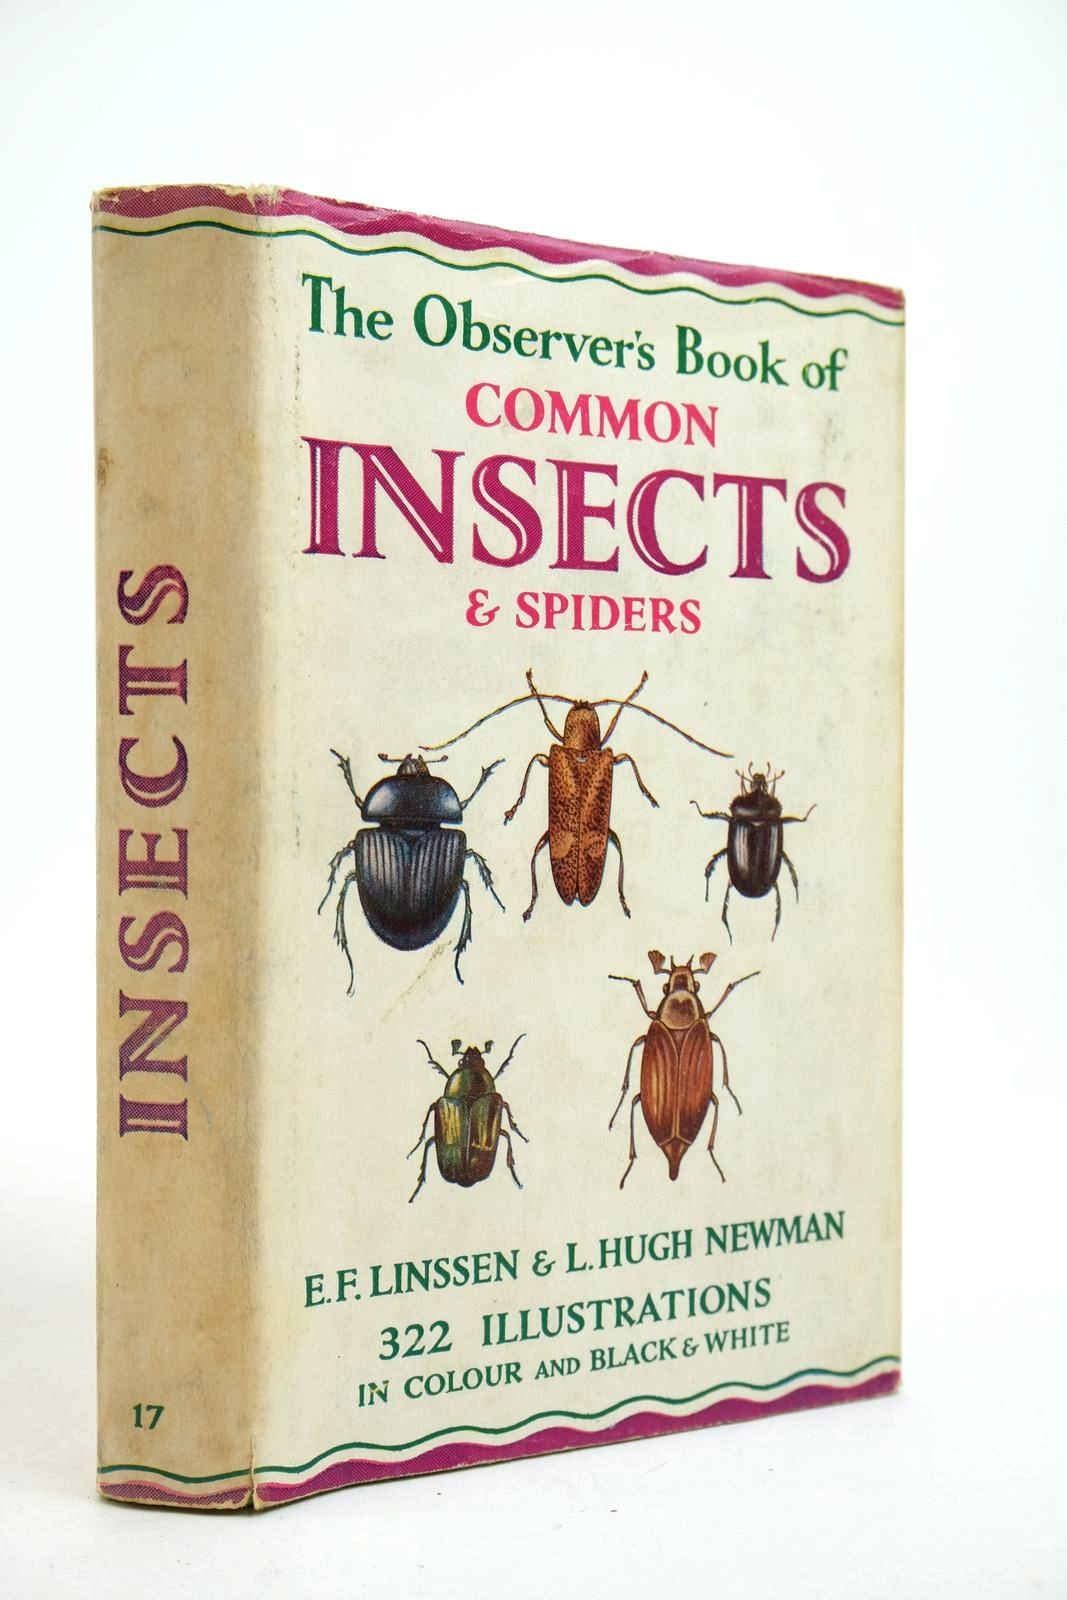 Photo of THE OBSERVER'S BOOK OF COMMON INSECTS AND SPIDERS written by Linssen, E.F. Newman, L. Hugh published by Frederick Warne & Co Ltd. (STOCK CODE: 2134663)  for sale by Stella & Rose's Books